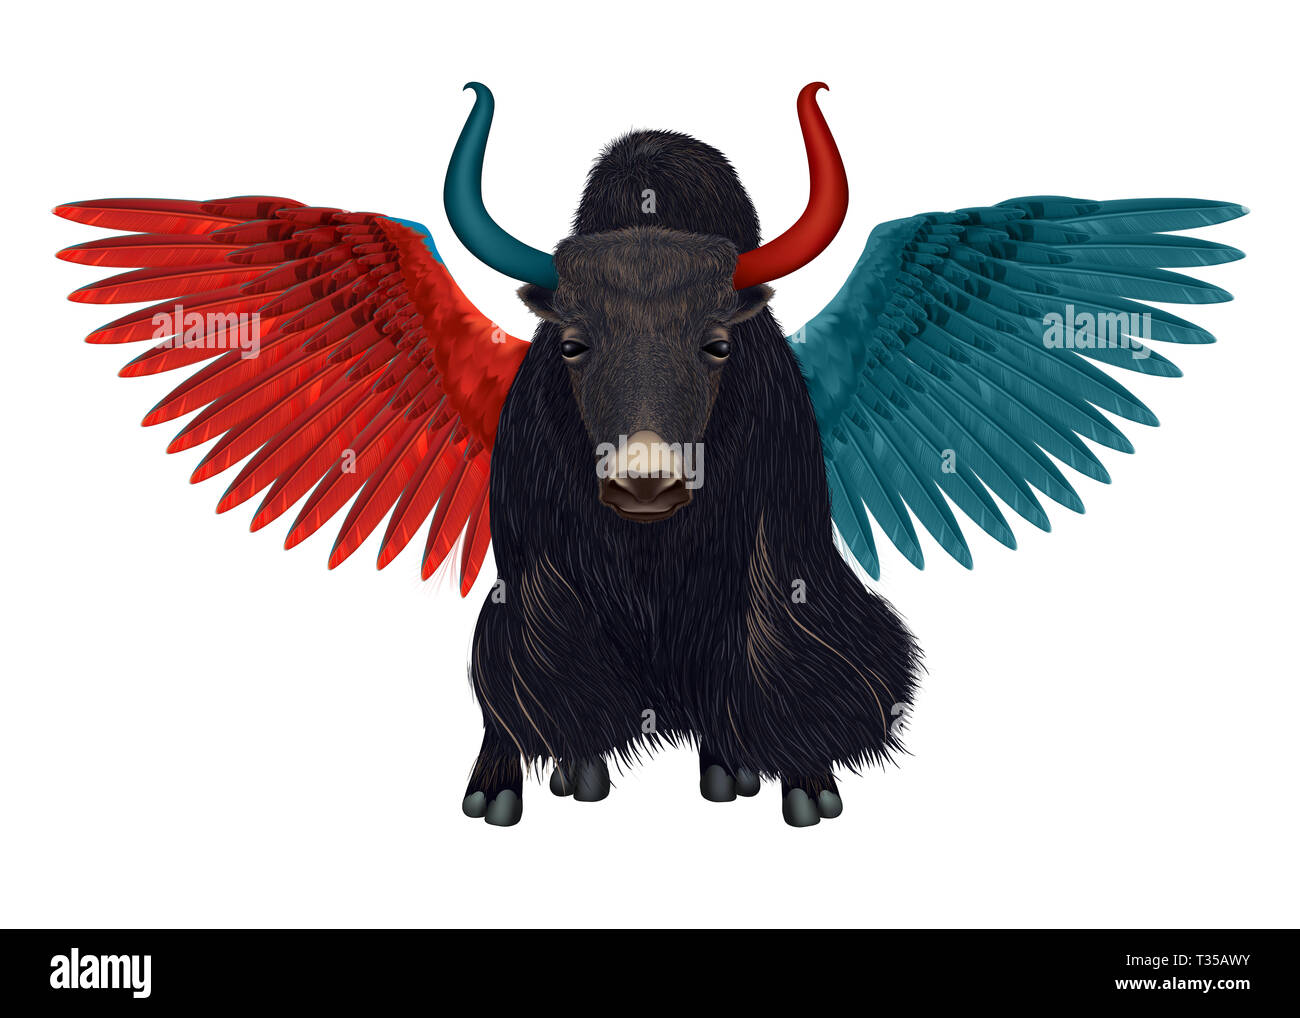 Keepyour feet on the ground andopen wings in the air - Dual Personality – Surreal Hybrid of Yak and Macaw – Metaphor of  Good and Evil concept - Stock Image